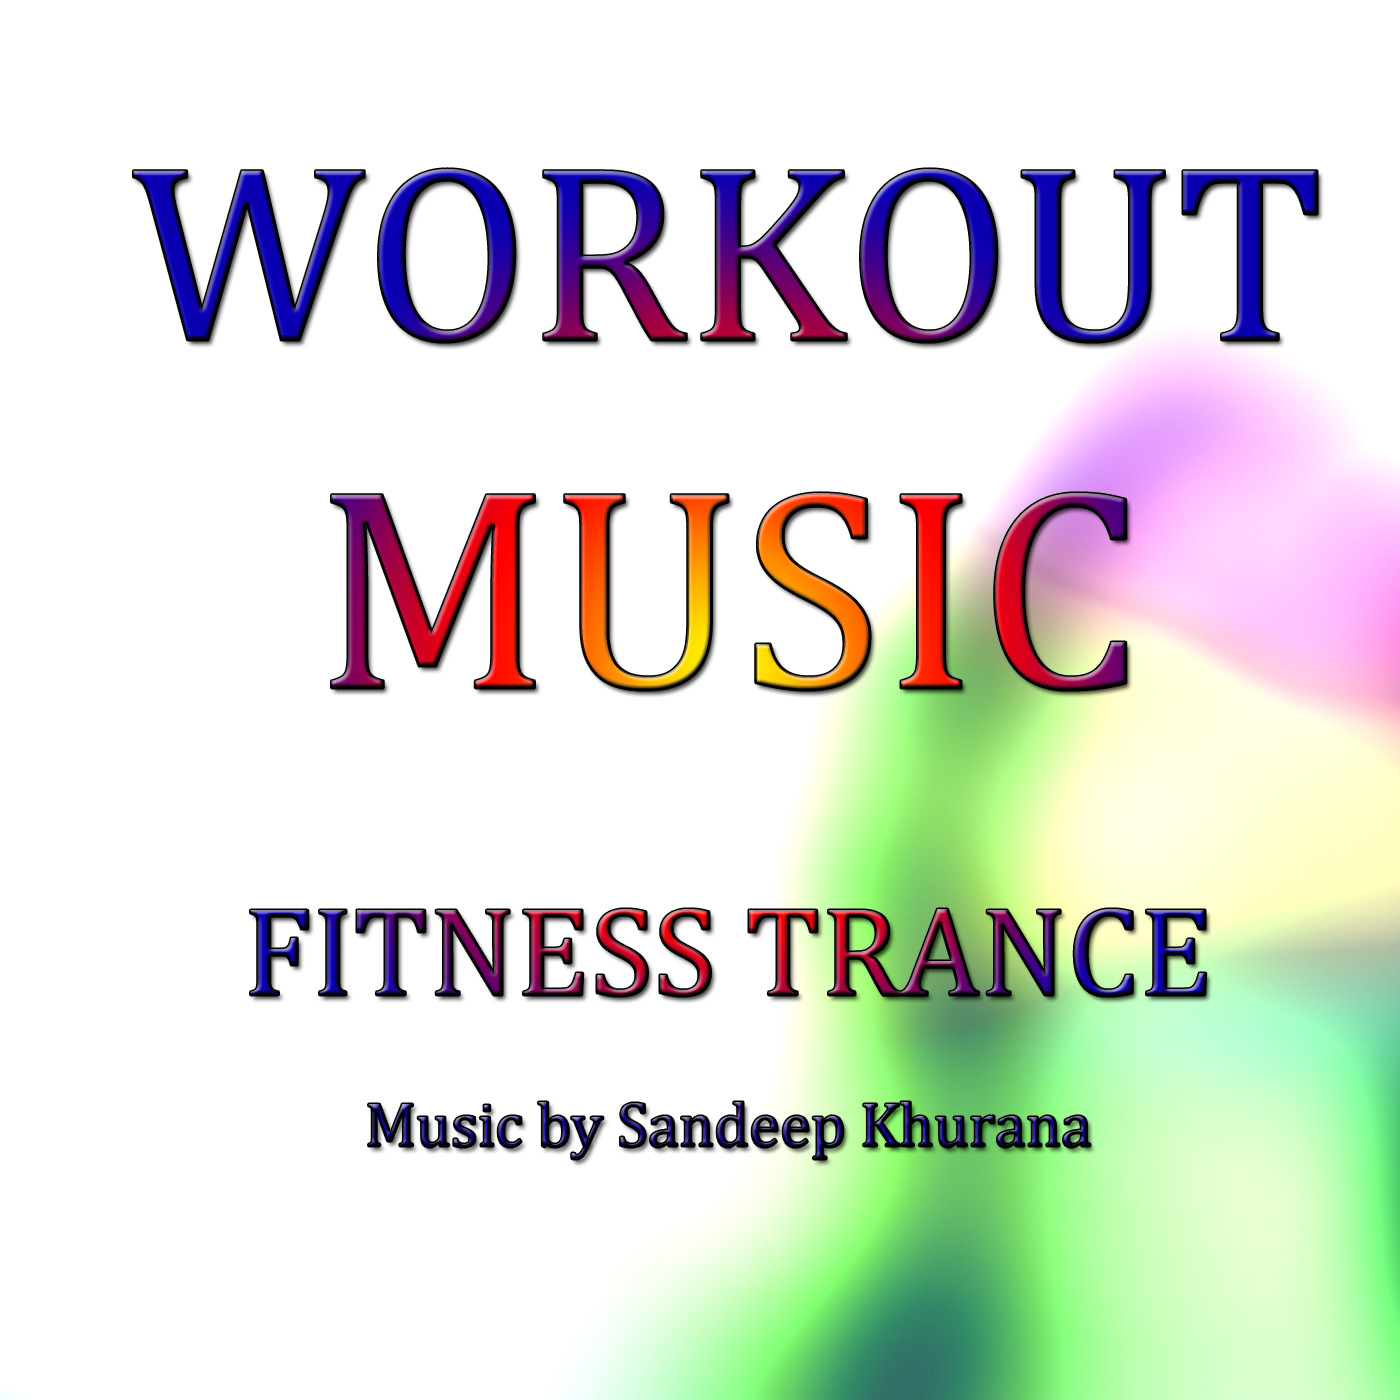 Workout Music - Fitness Trance